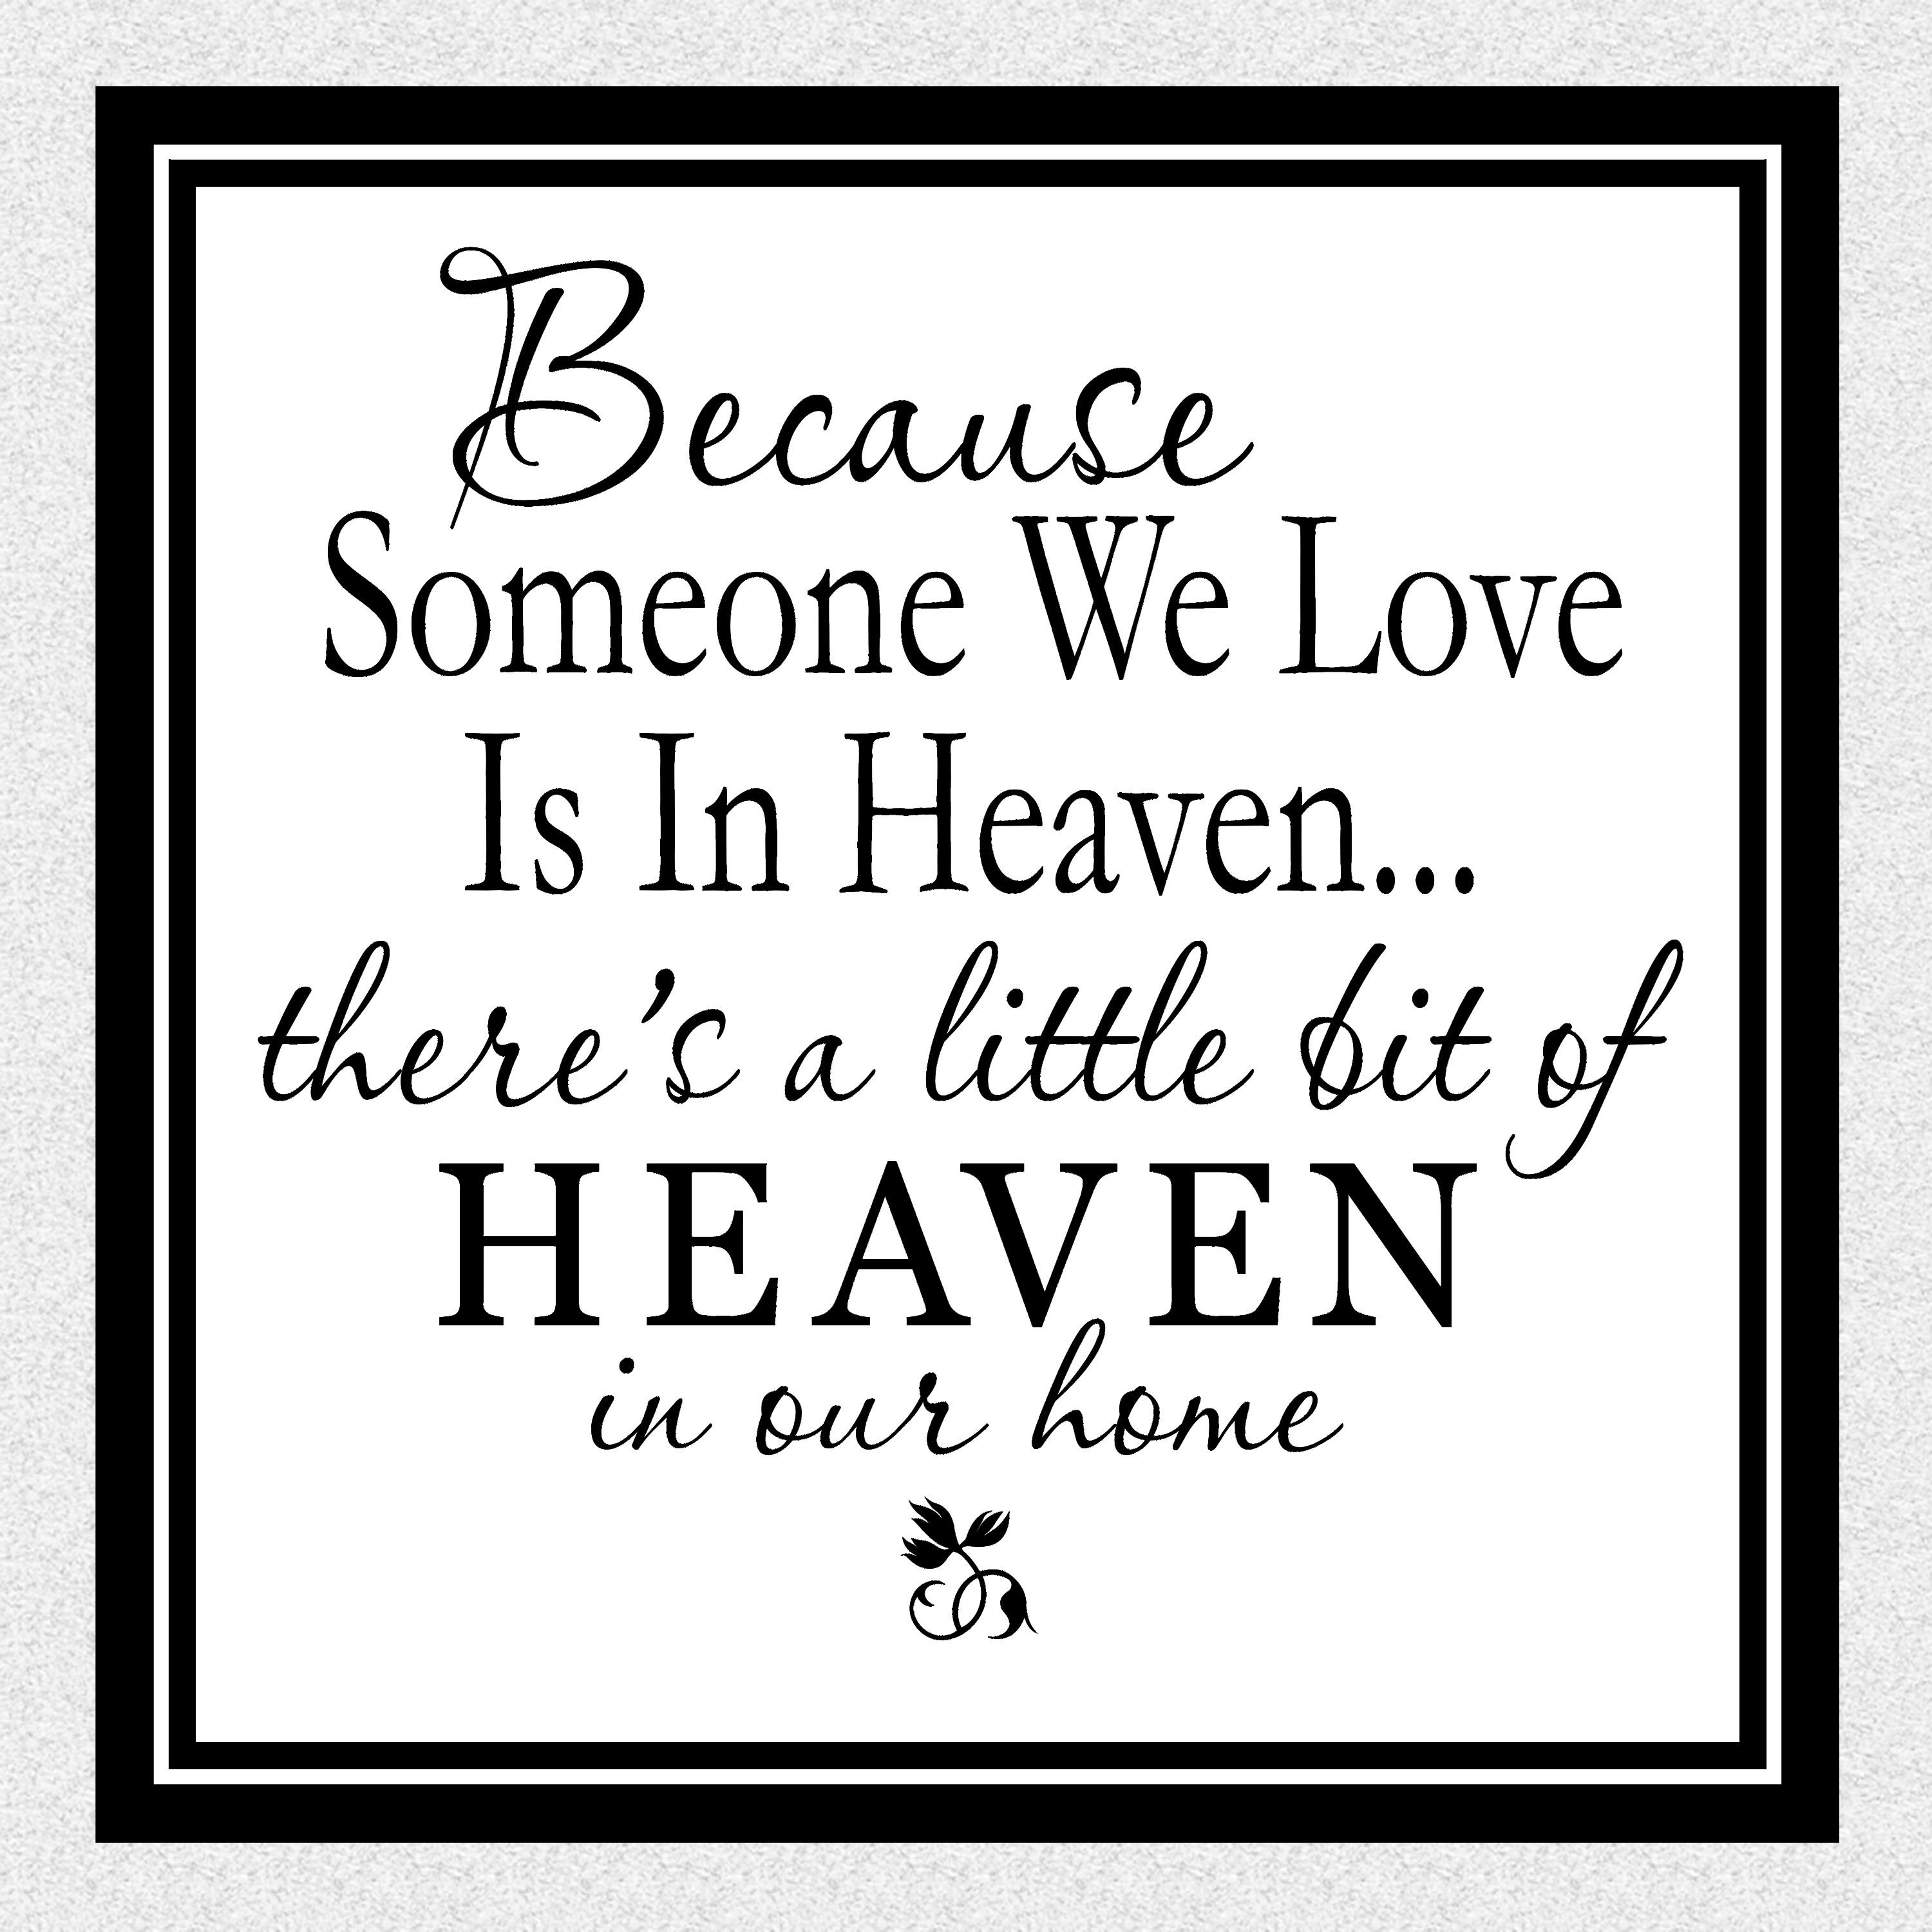 In Loving Memory Quotes Gallery Of Memorial Quotes For Loved Ones  Love Quotes  In